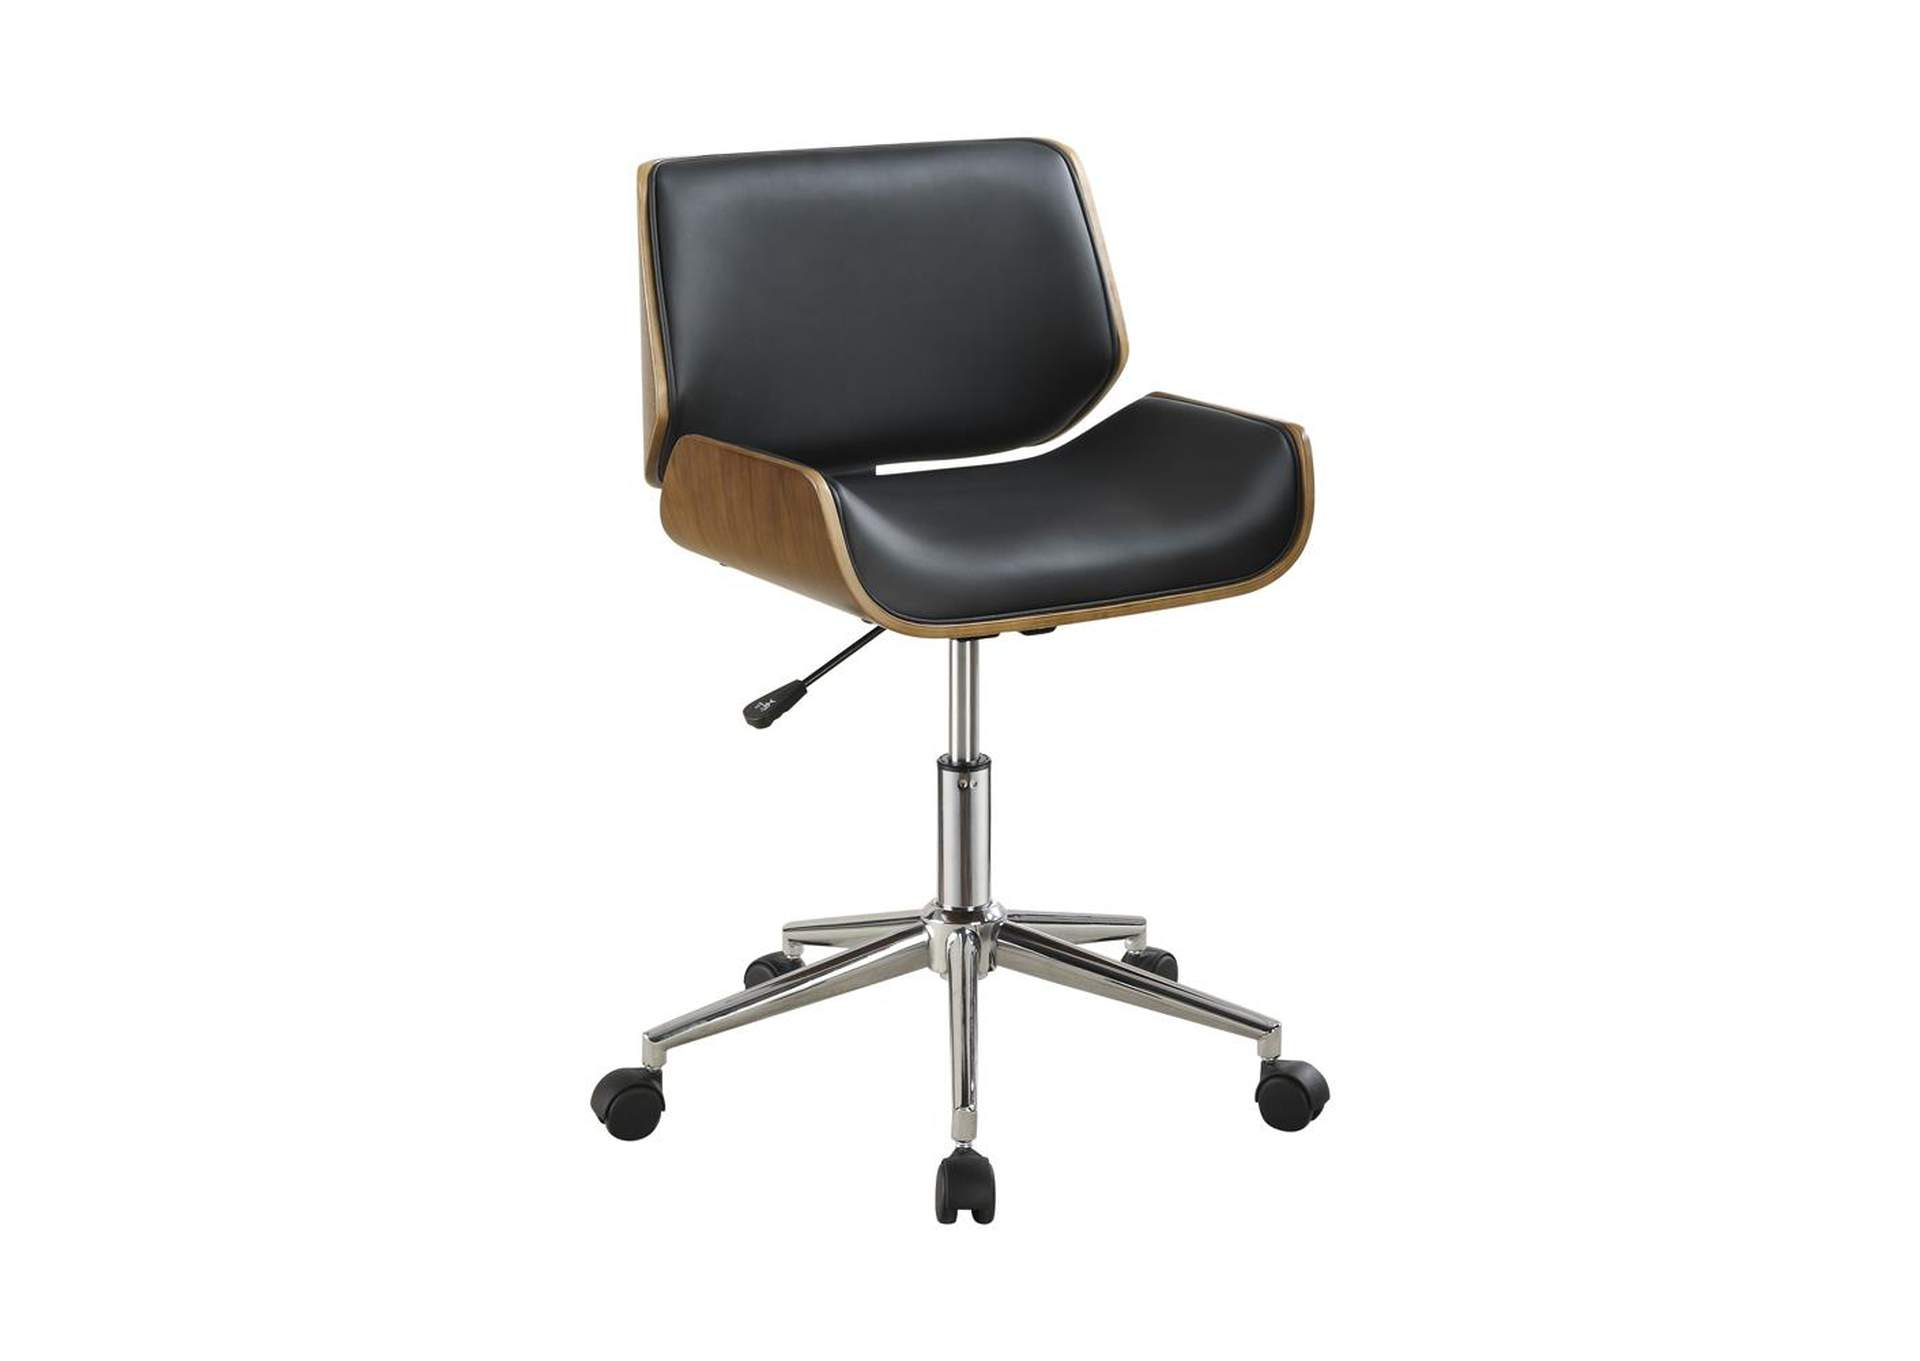 Walnut Modern Black Office Chair,Coaster Furniture